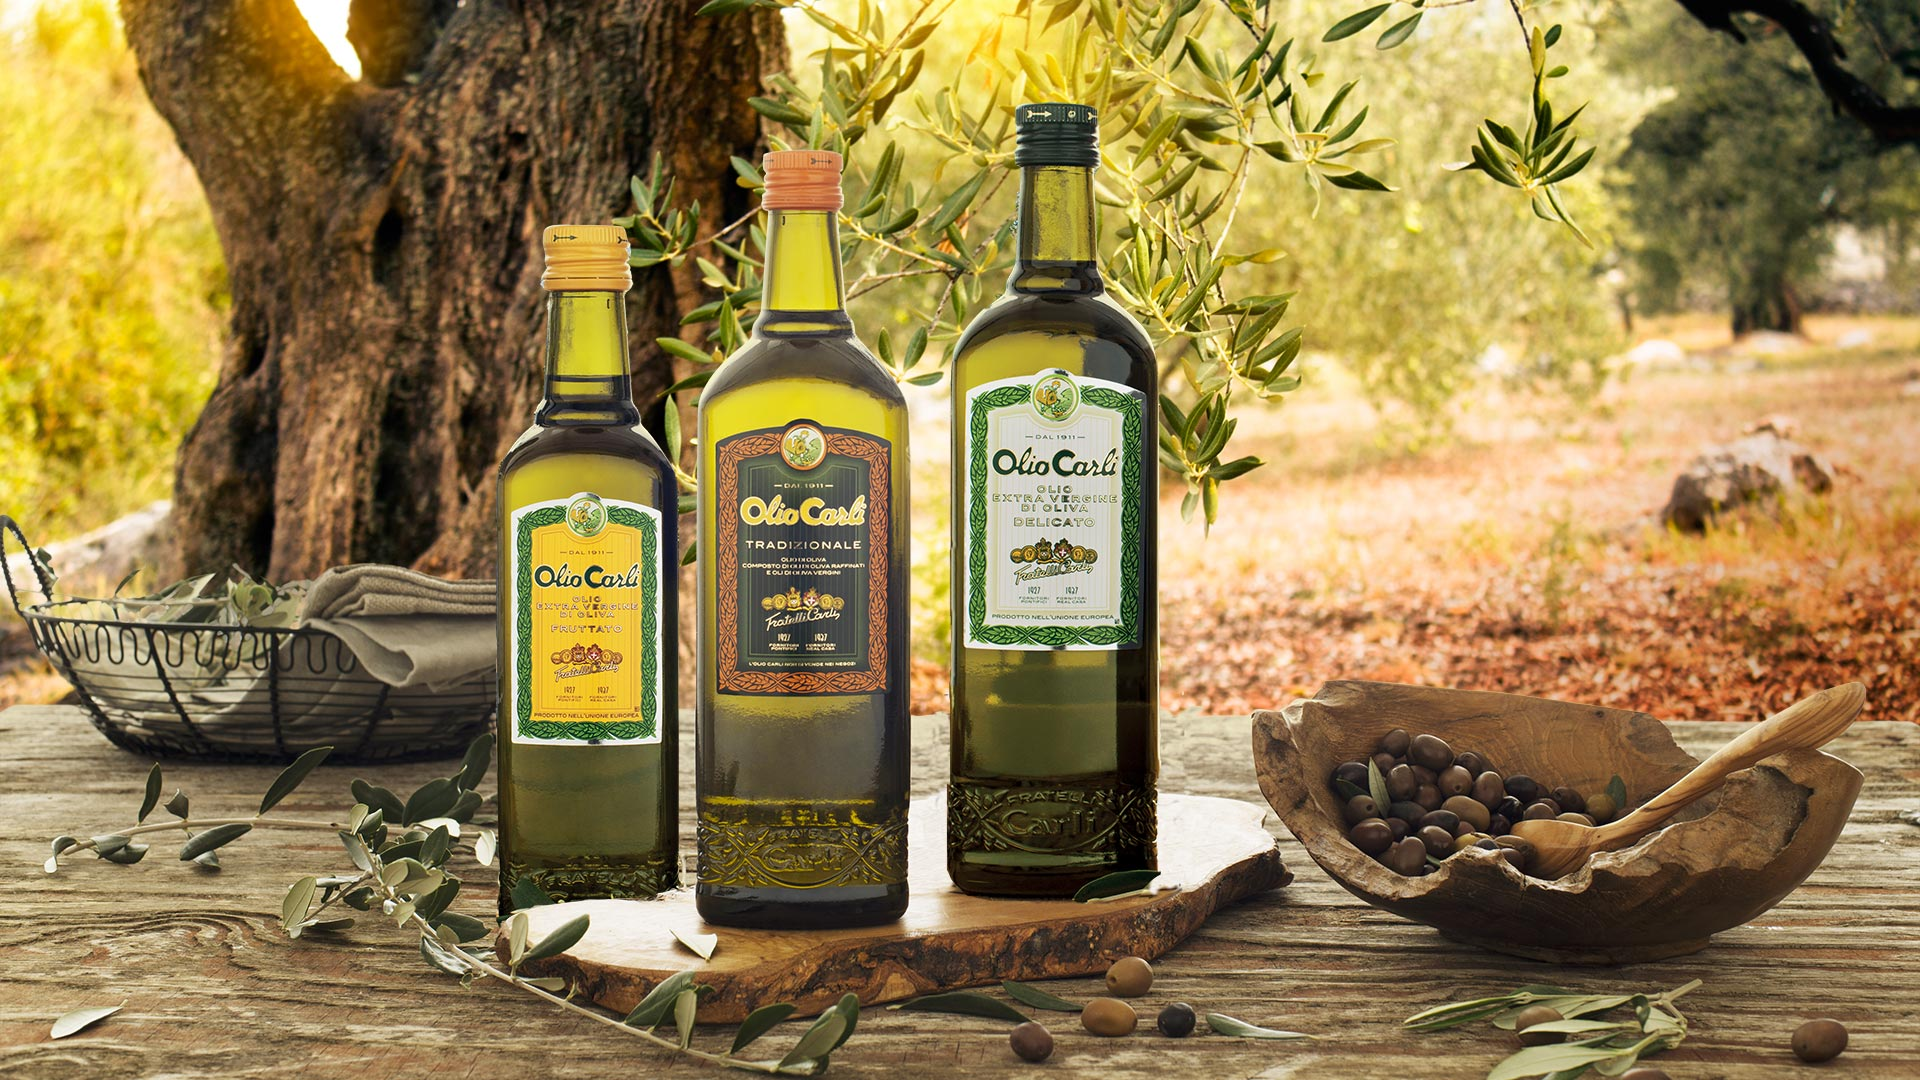 How to store olive oil – Fratelli Carli